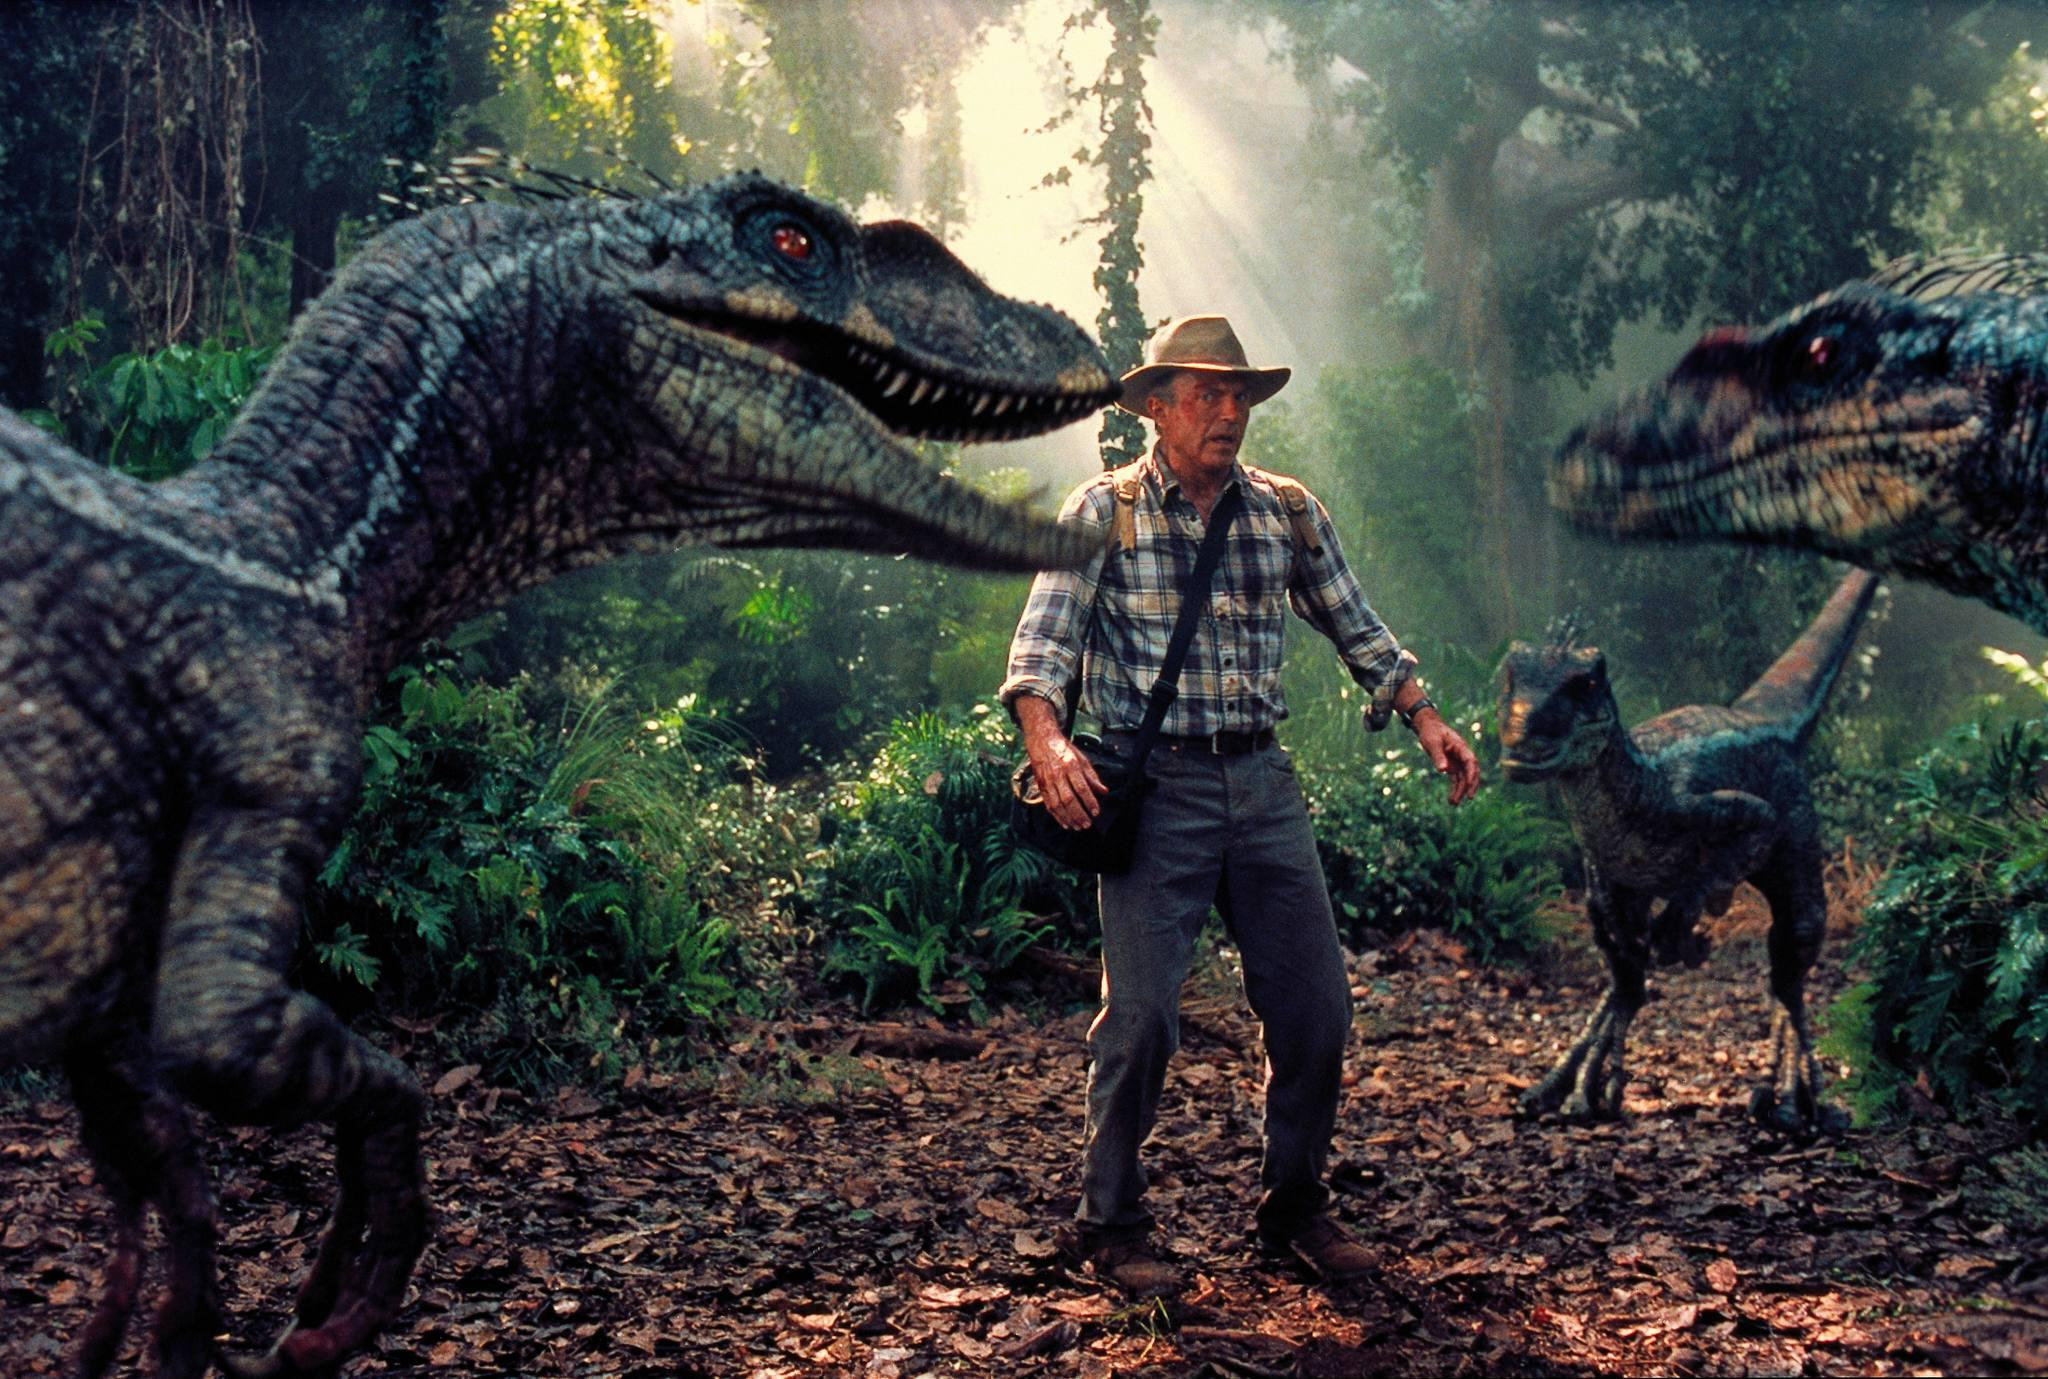 FPR Staff Picks: Our favorite Steven Spielberg films